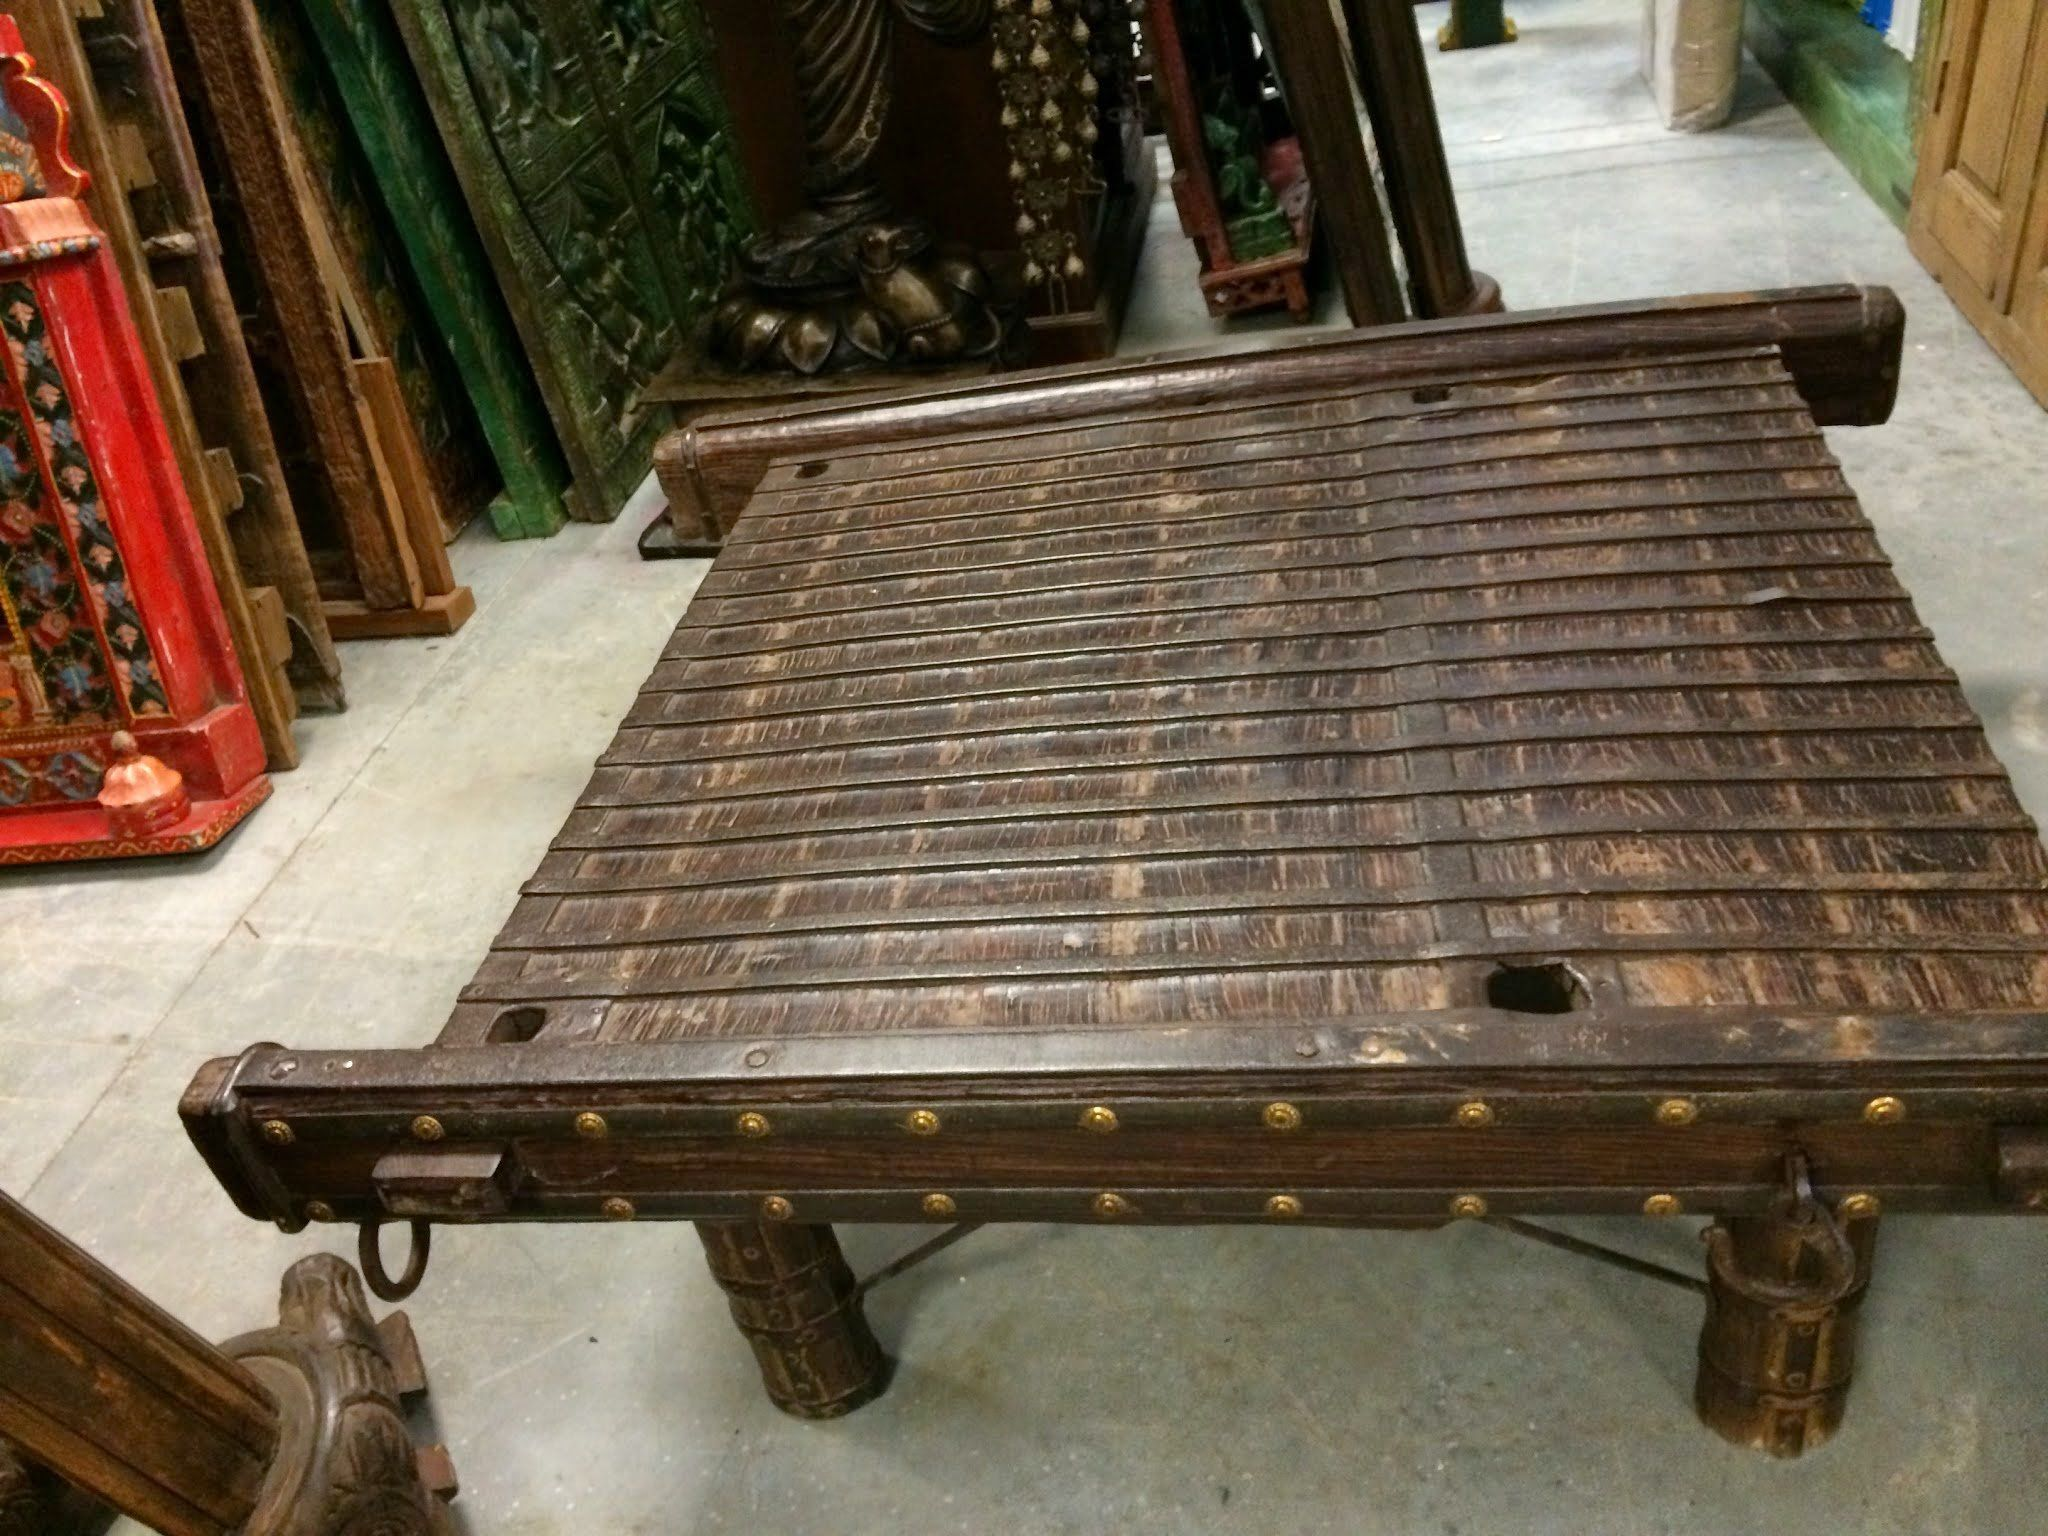 Antique Banjara Vintage Indian Solid Ox Cart Coffee Table With Brass Iron Accents Amazon Com Home Garden Cart Coffee Table Coffee Table Rustic Furniture